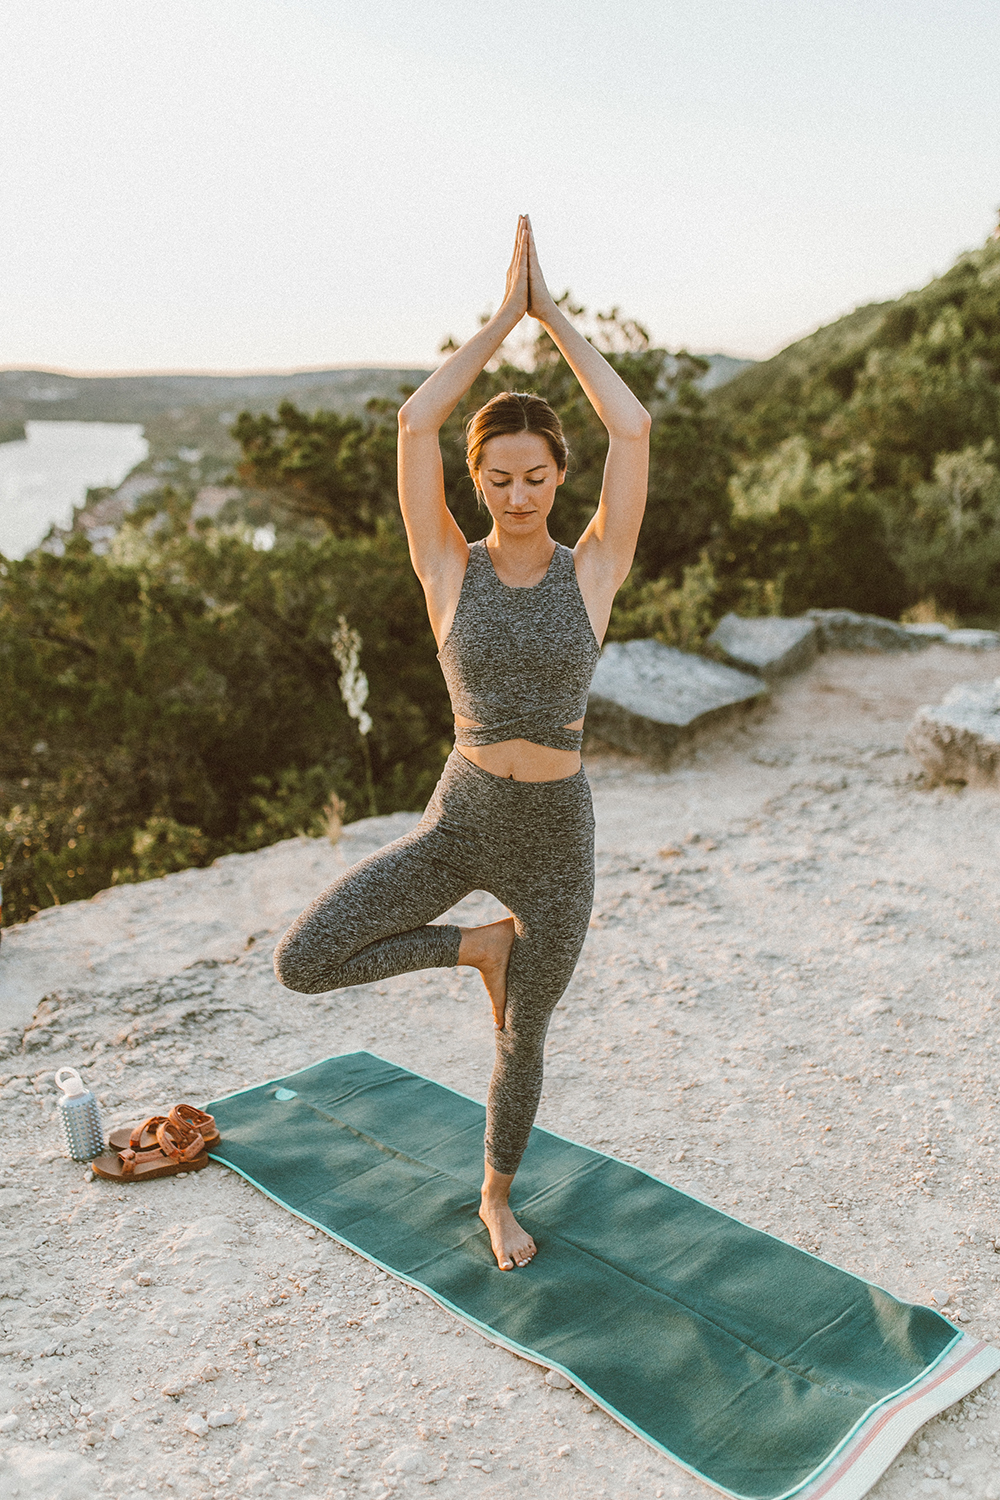 livvyland-blog-olivia-watson-austin-texas-mount-bonnell-yoga-backcountry-beyond-yoga-spacedye-leggings-sports-bra-9